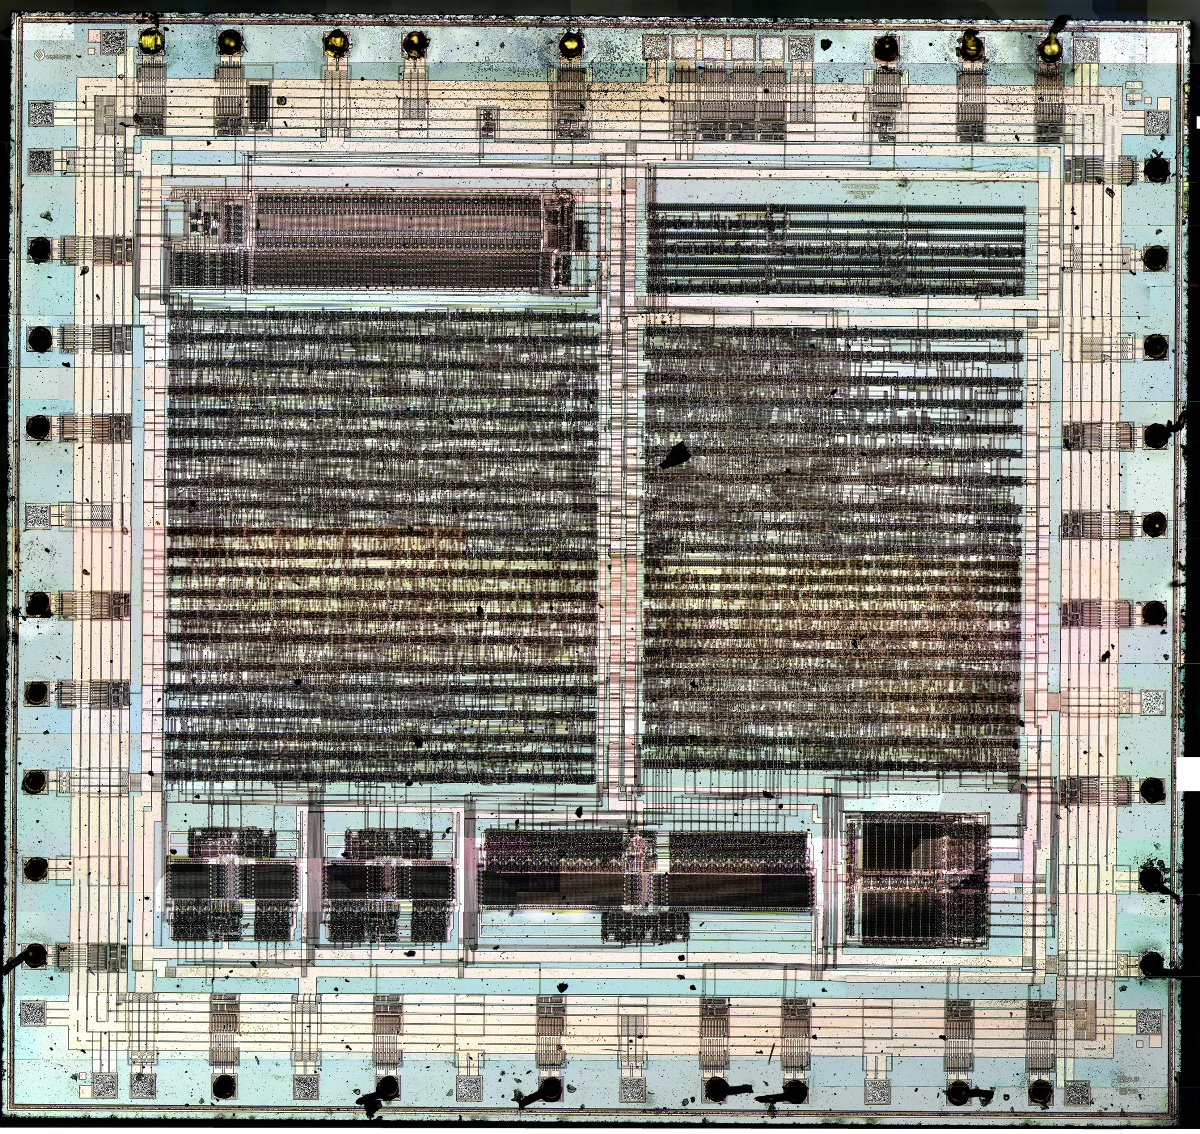 Here is a close-up of the clipper chip